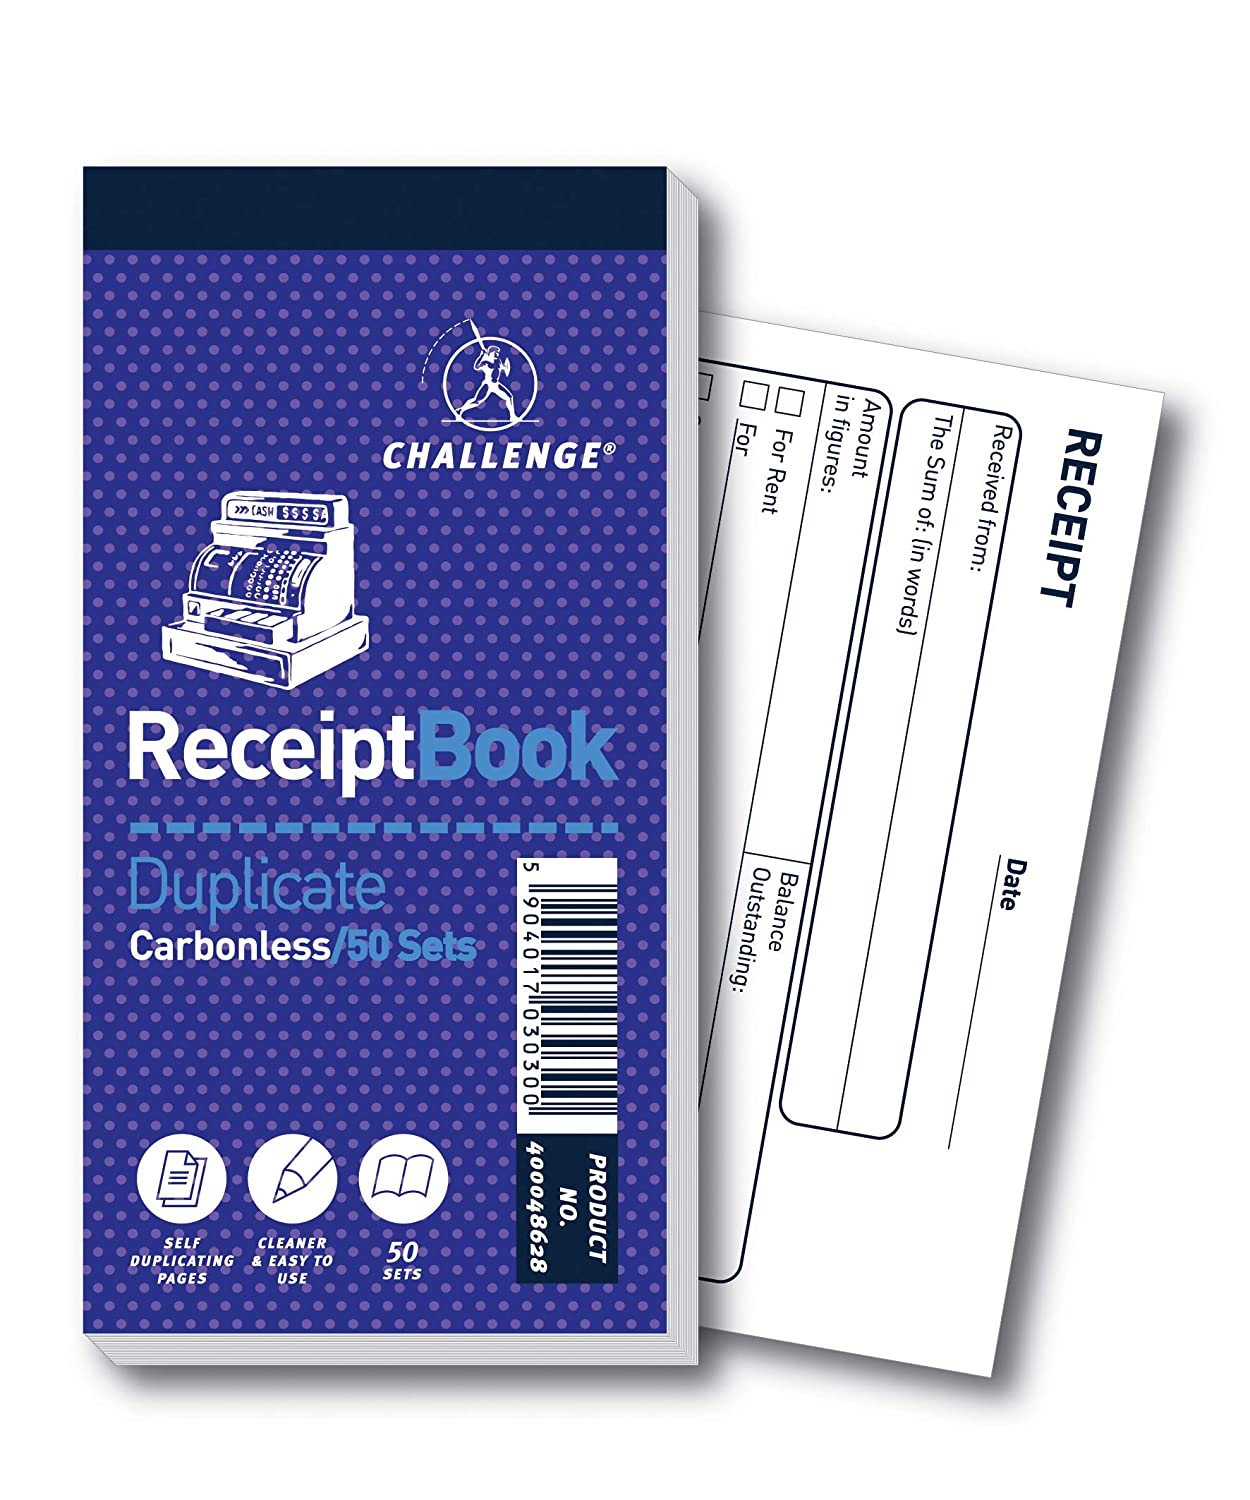 50 Pages Challenge 140 x 70 mm Duplicate Receipt Book Carbonless